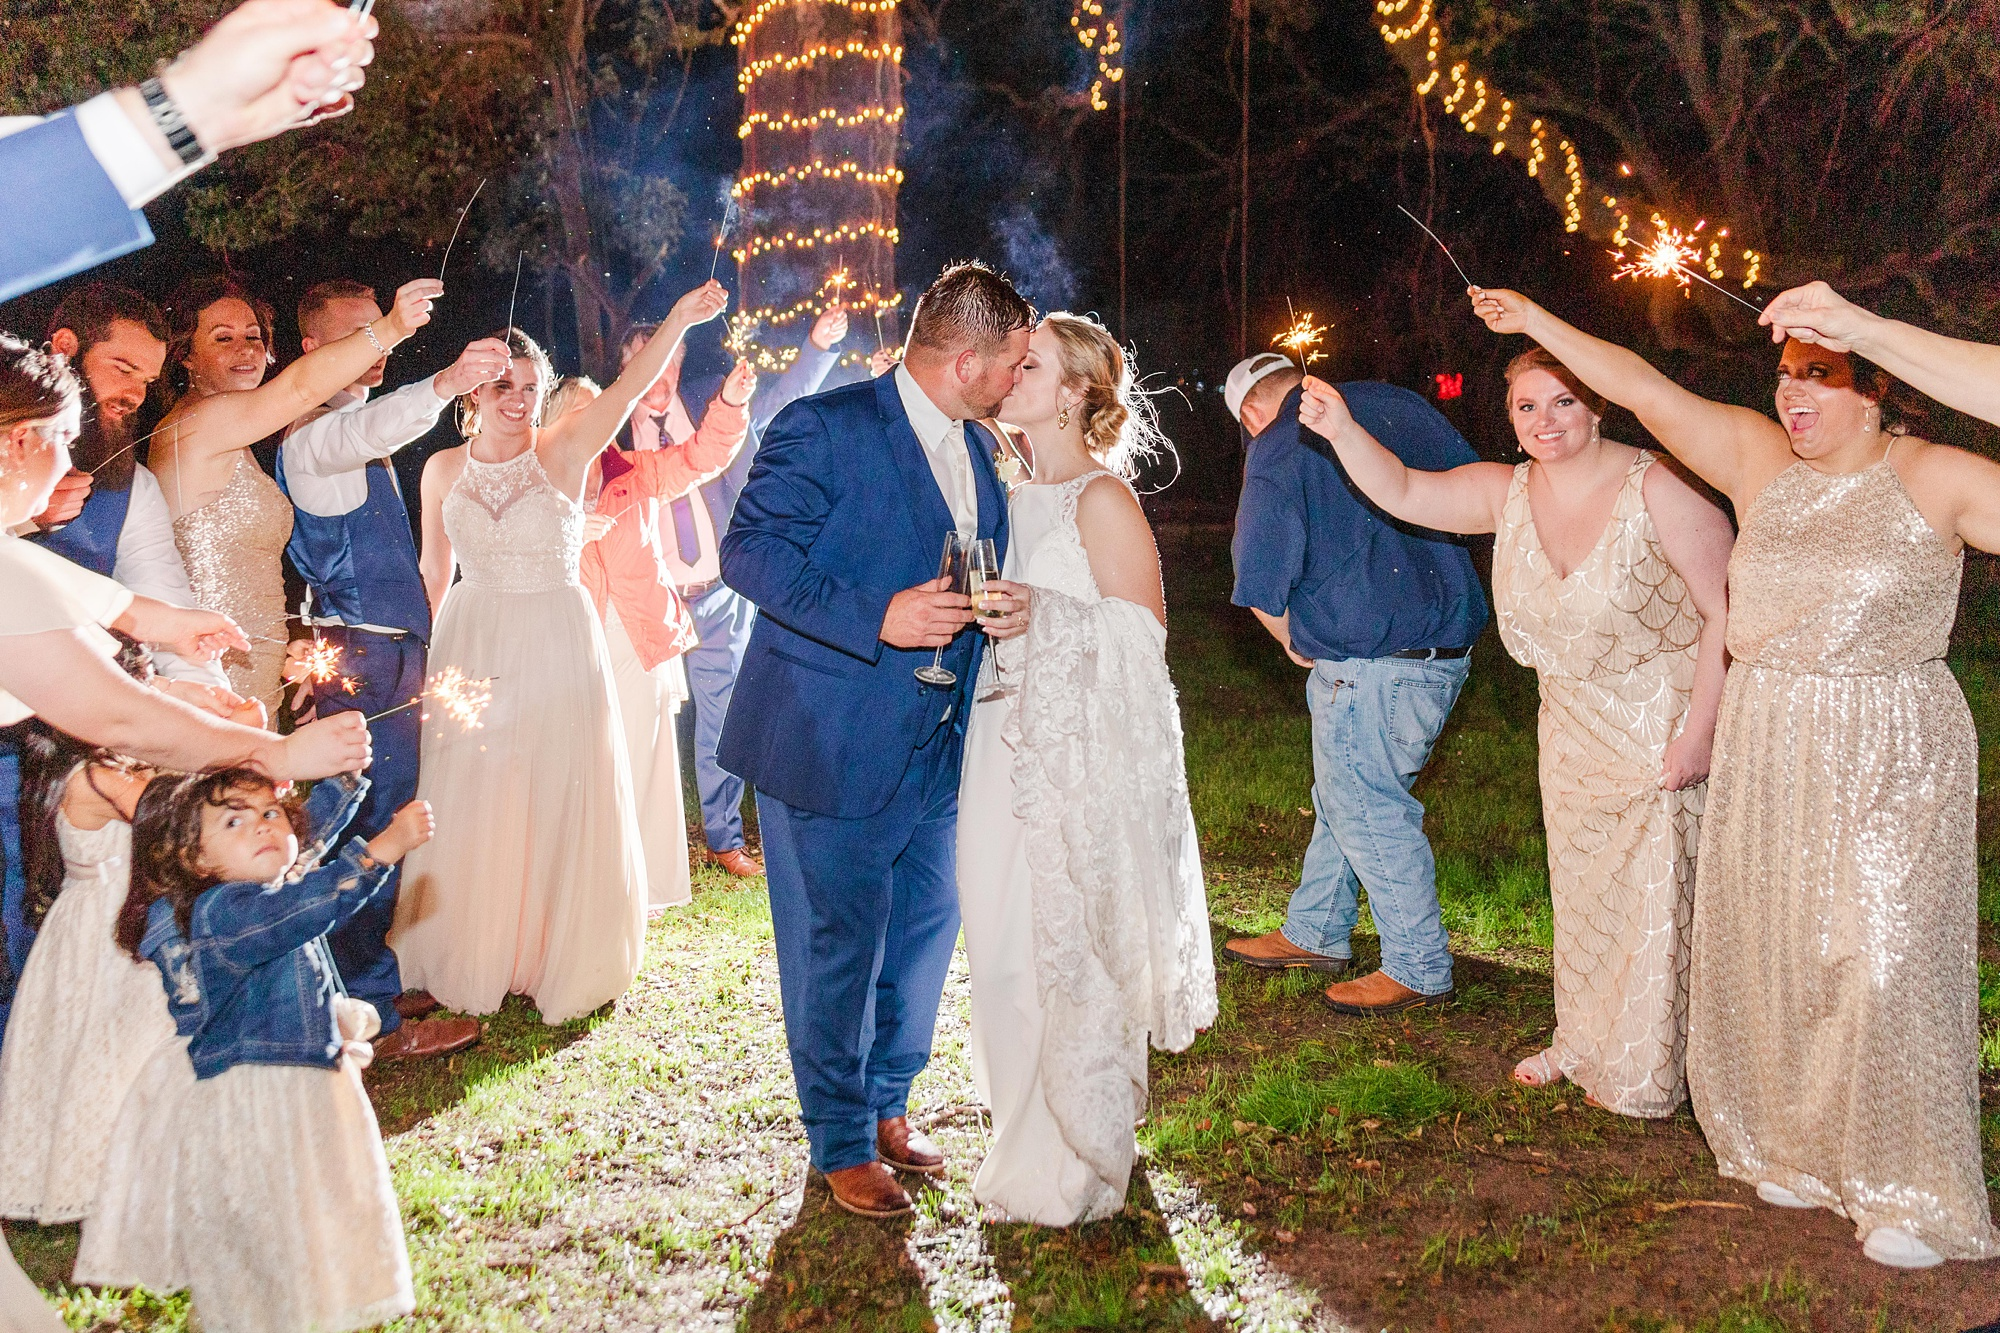 sparkler exit for New Year's Eve wedding